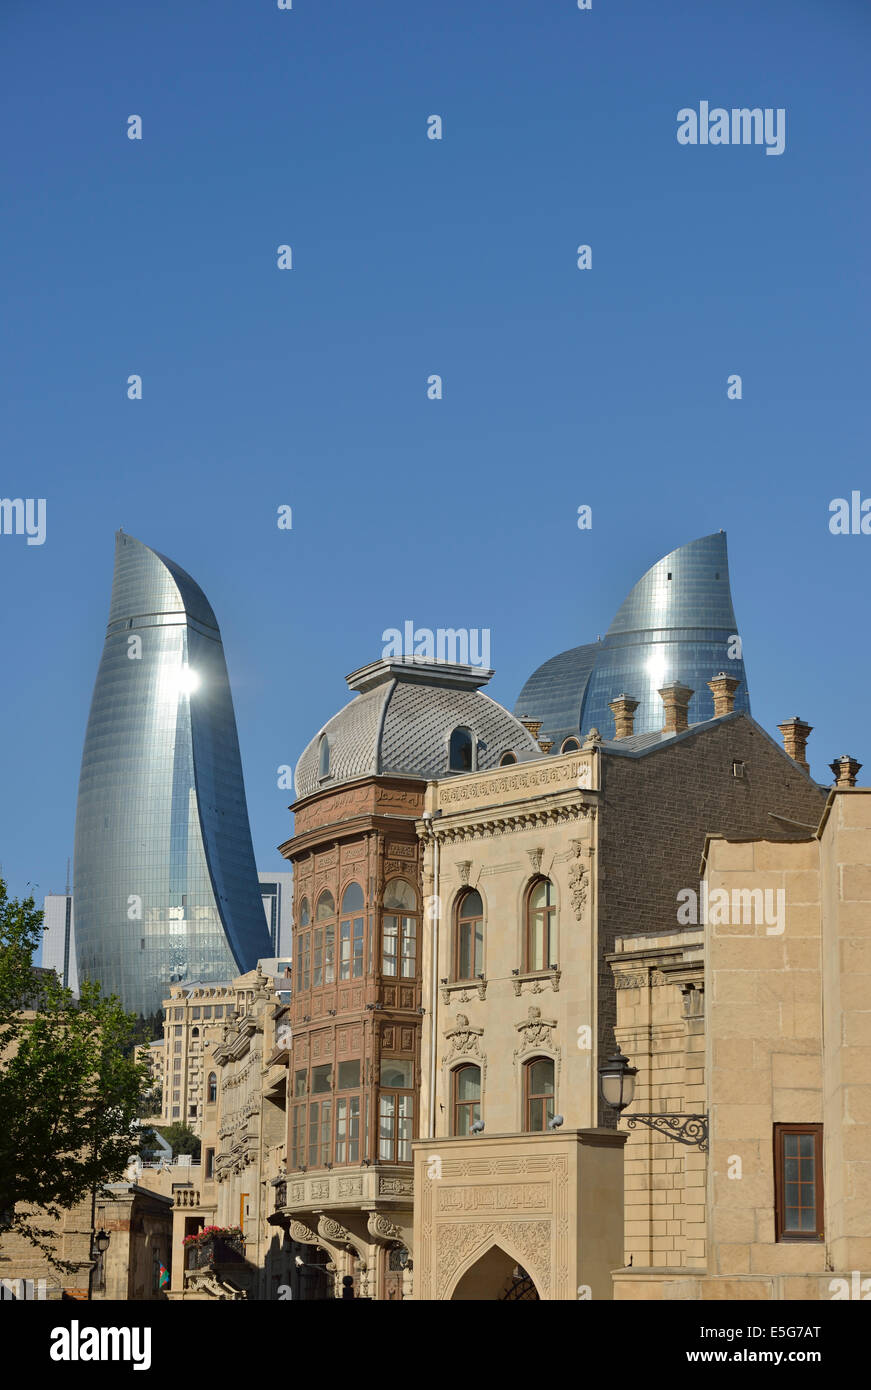 Flame Towers visible over the buildings of the Old City, Baku, Azerbaijan - Stock Image